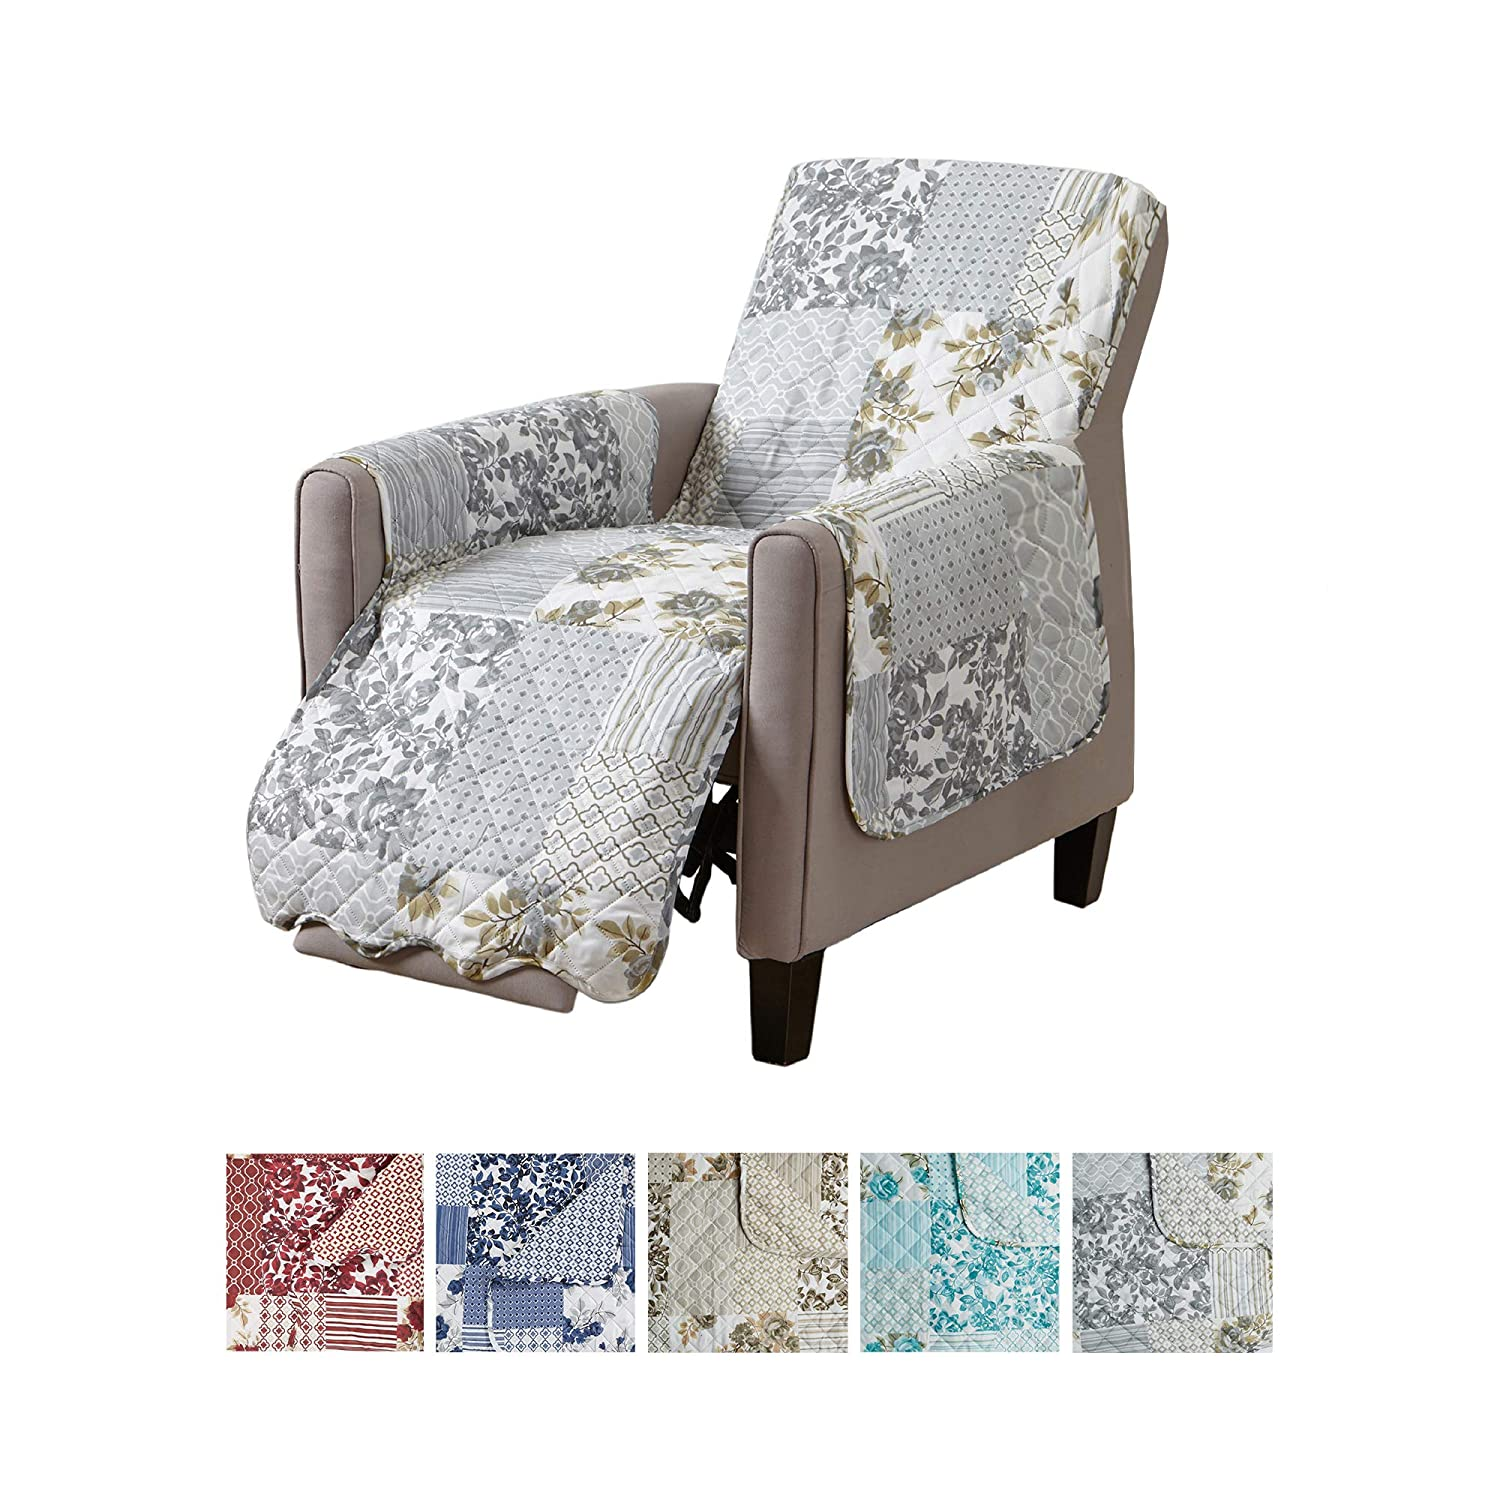 "Patchwork Scalloped Printed Furniture Protector. Stain Resistant Recliner Cover. (24"" Recliner, Grey)"